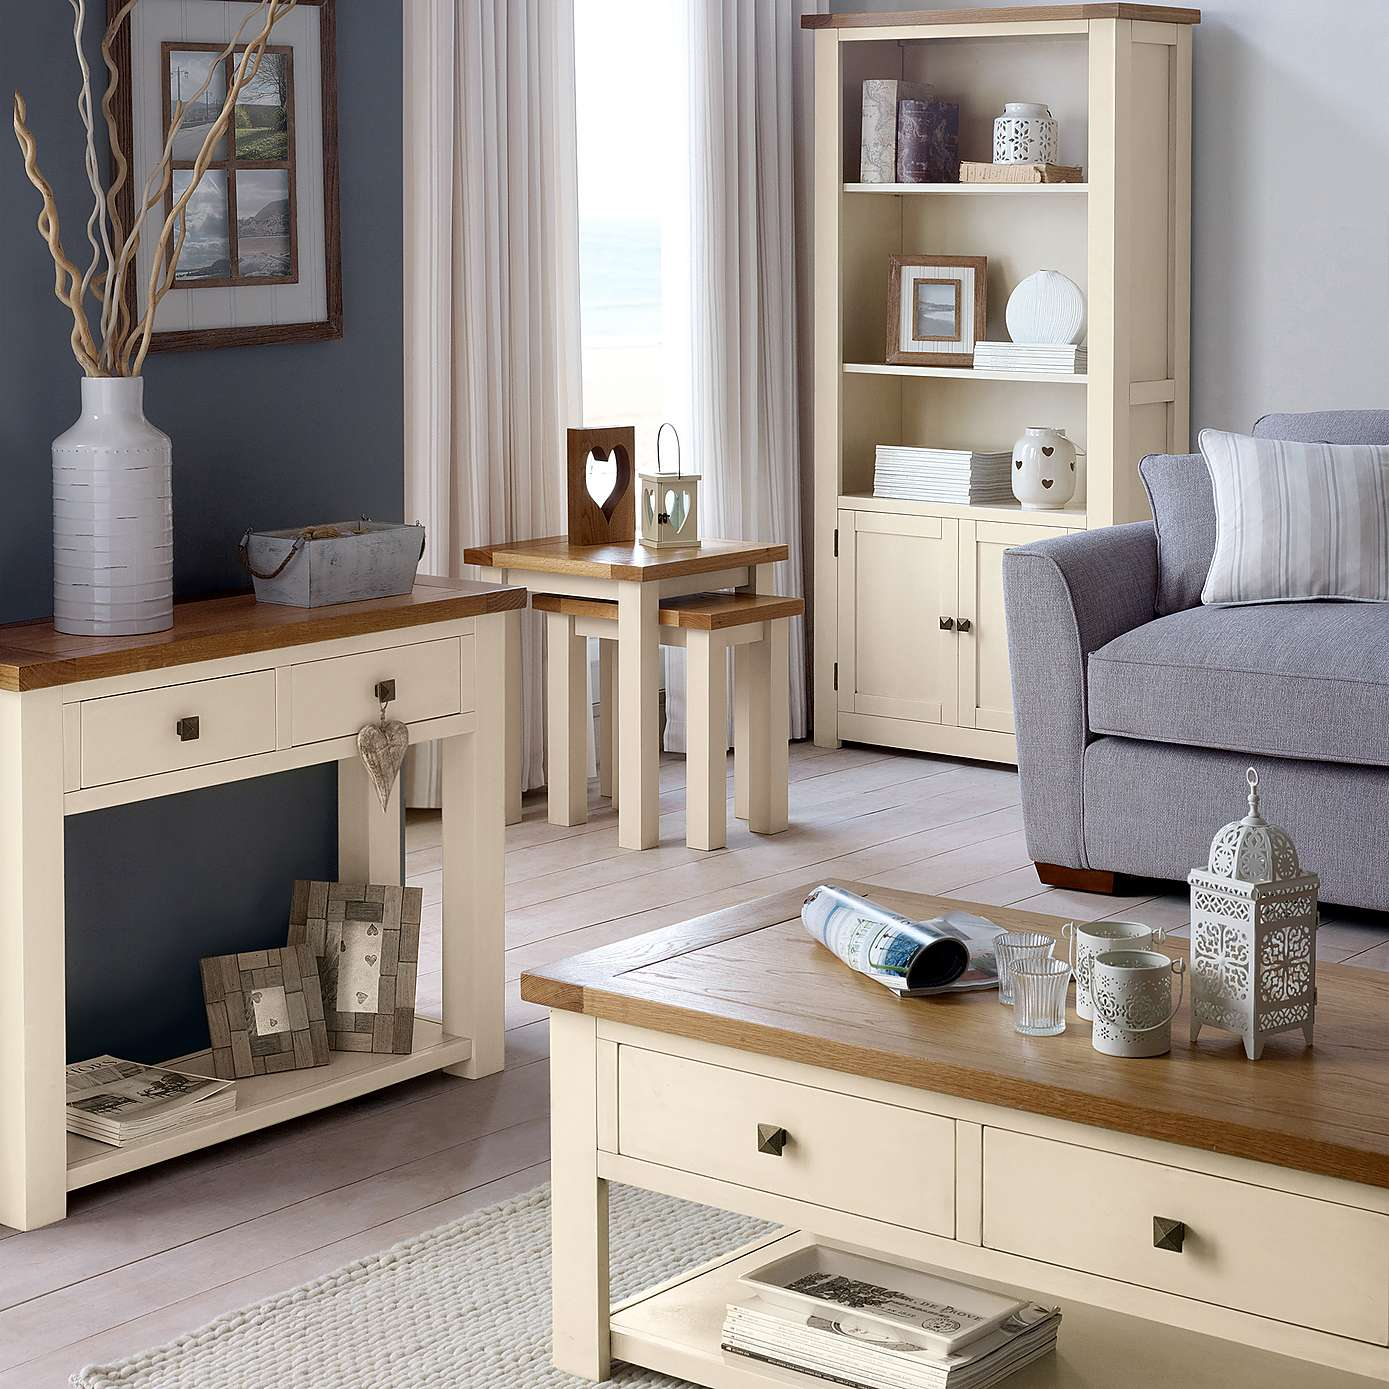 Blog house of oak - Living room ideas with oak furniture ...